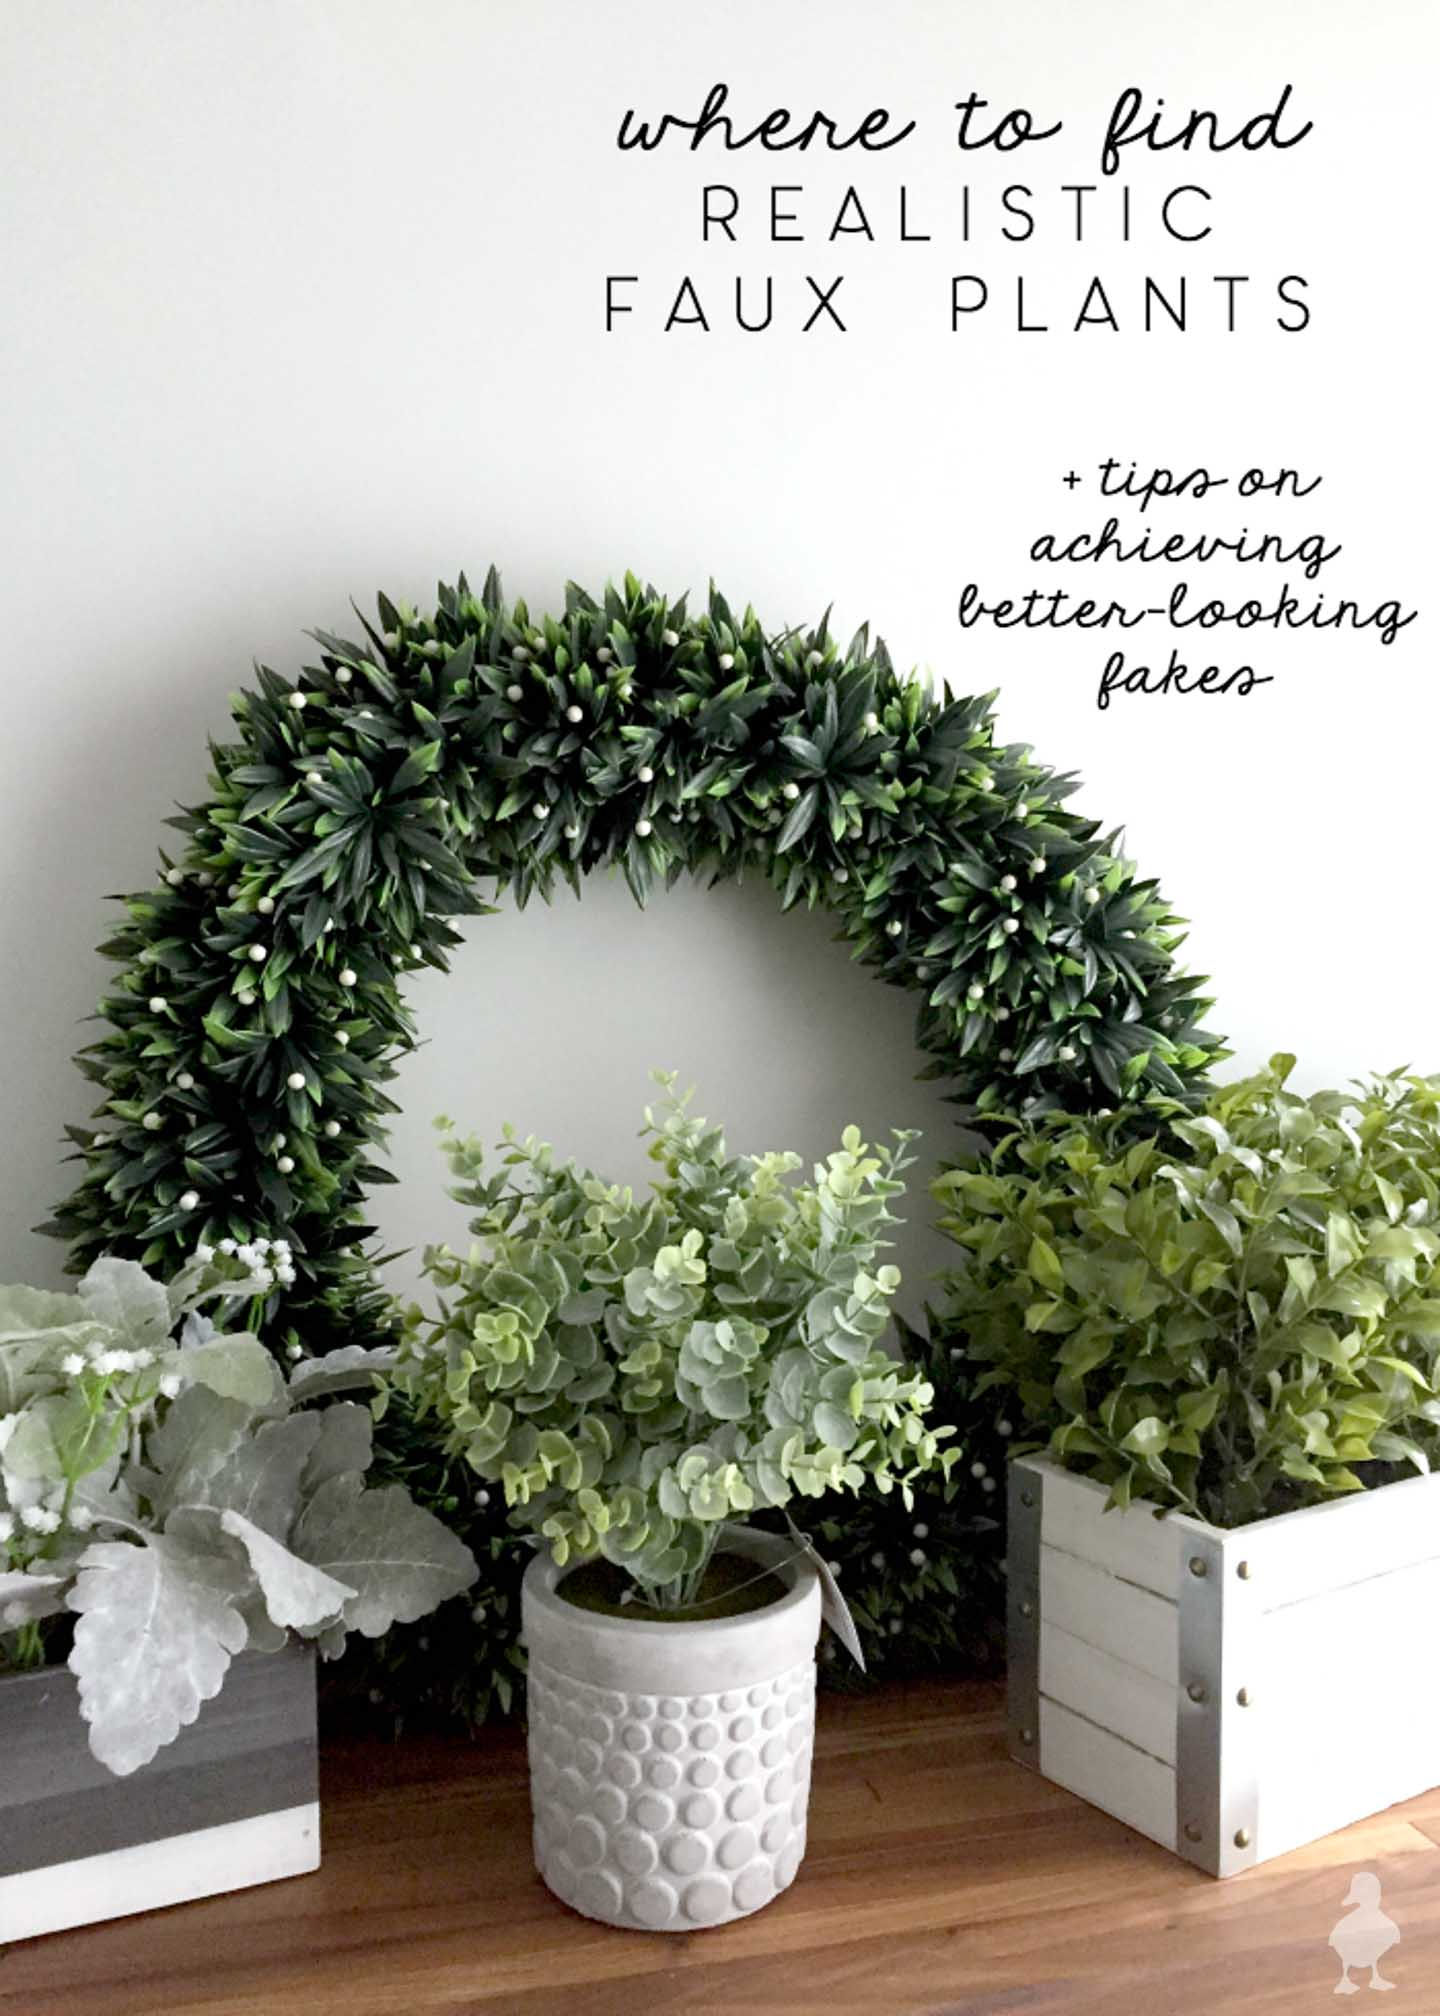 where-to-find-realistic-faux-plants-and-faking-better-plant-arrangements